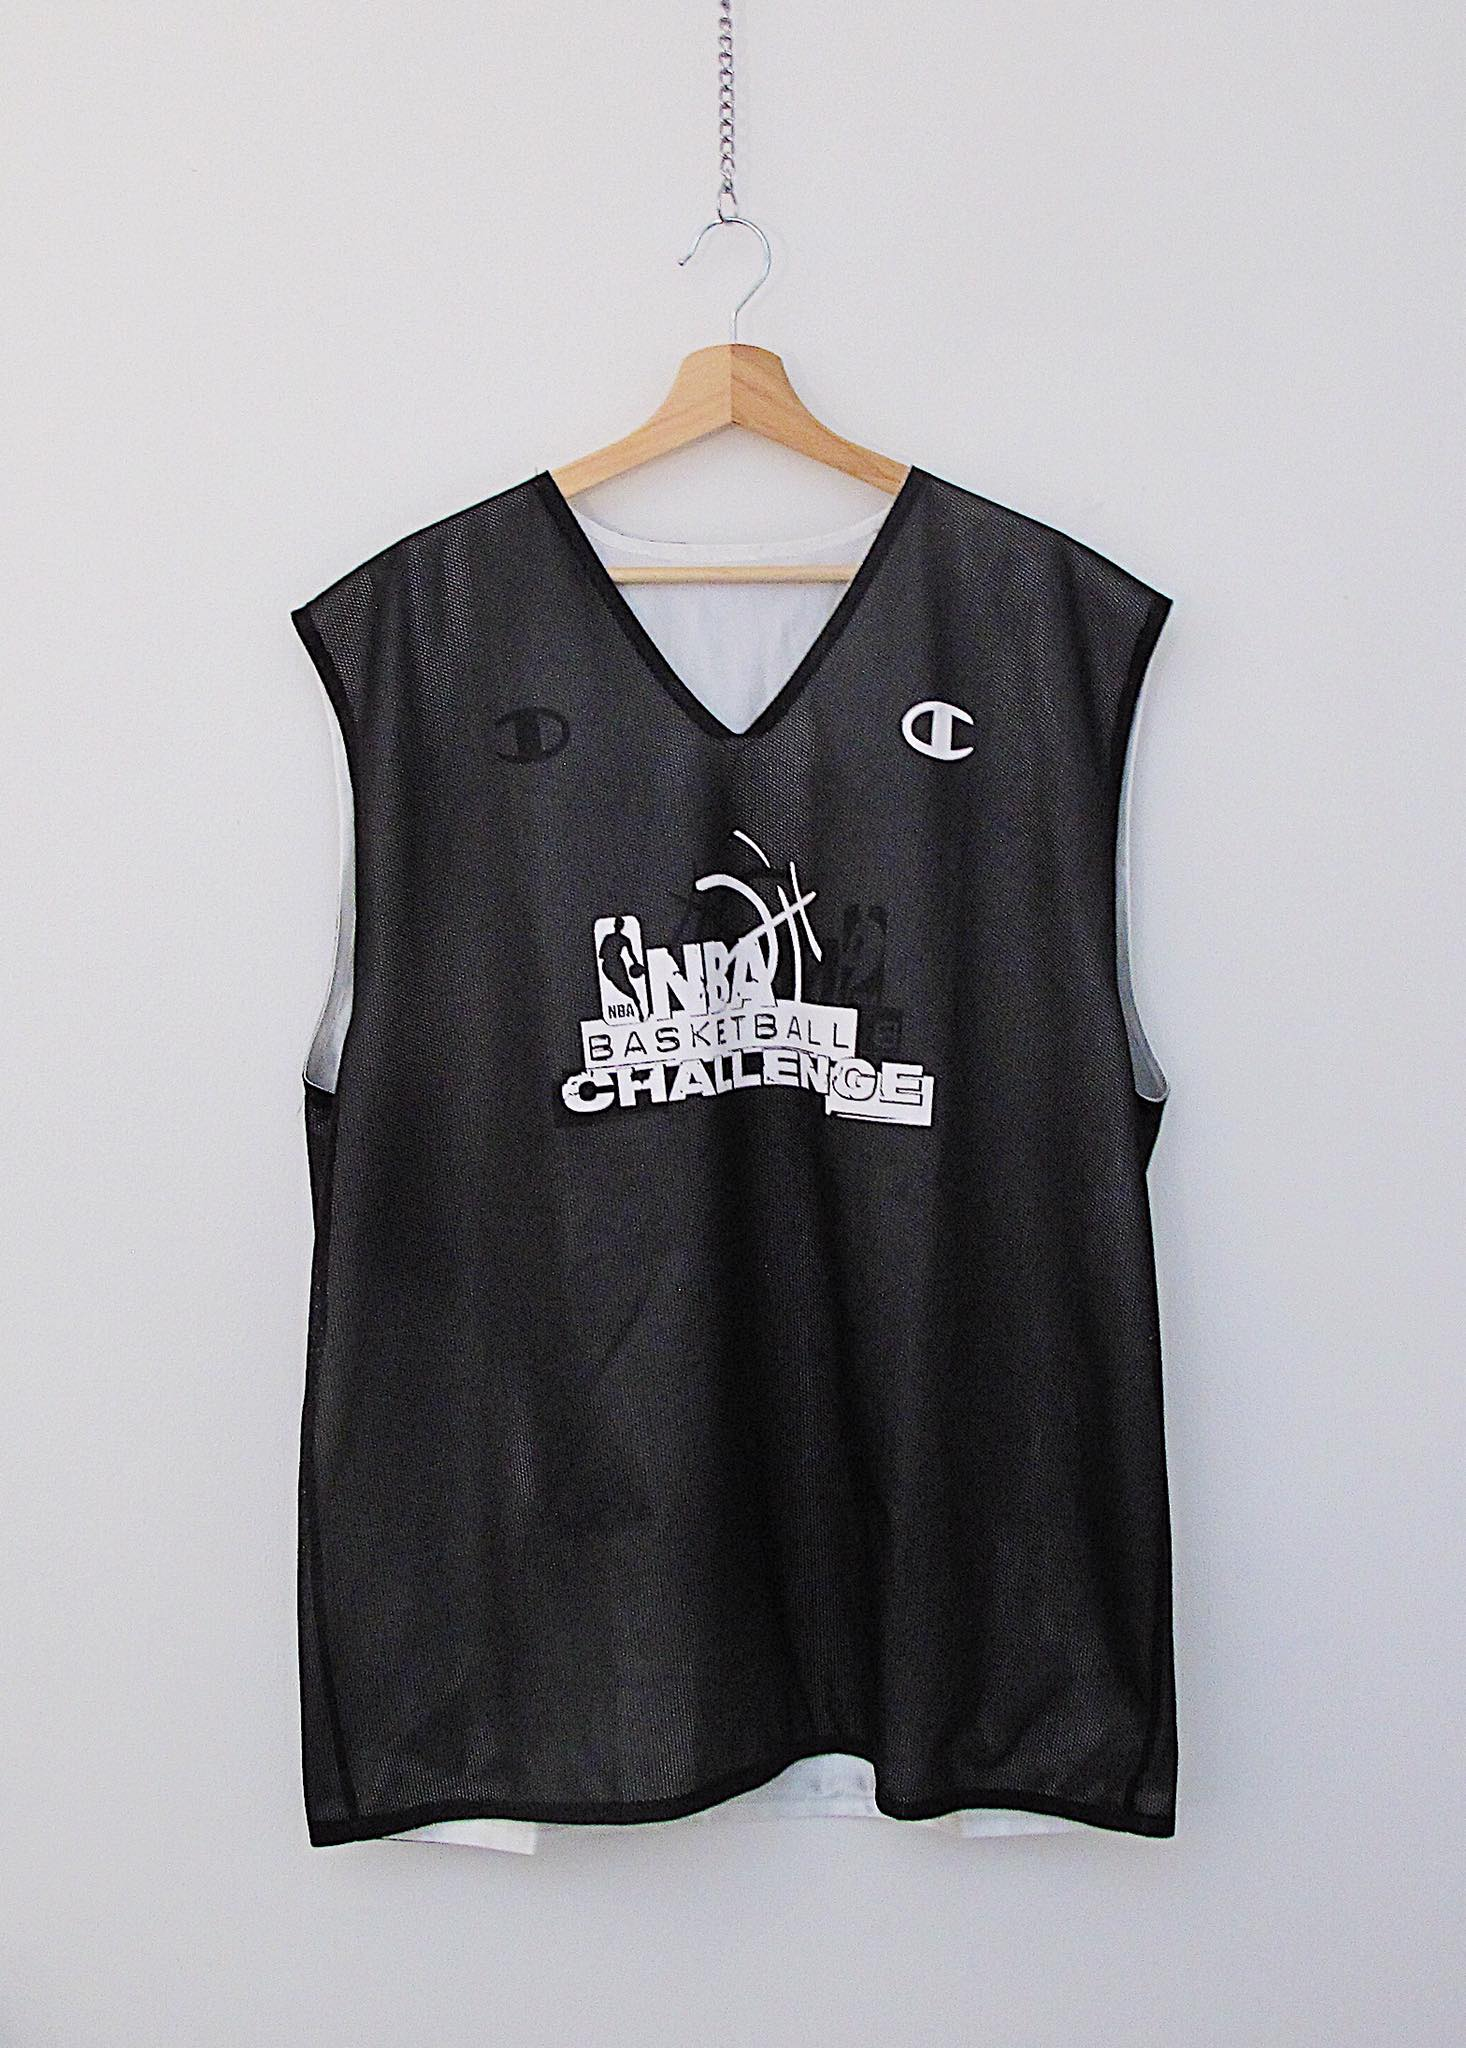 NBA Basketball Challenge Champion Reversible Jersey - XL